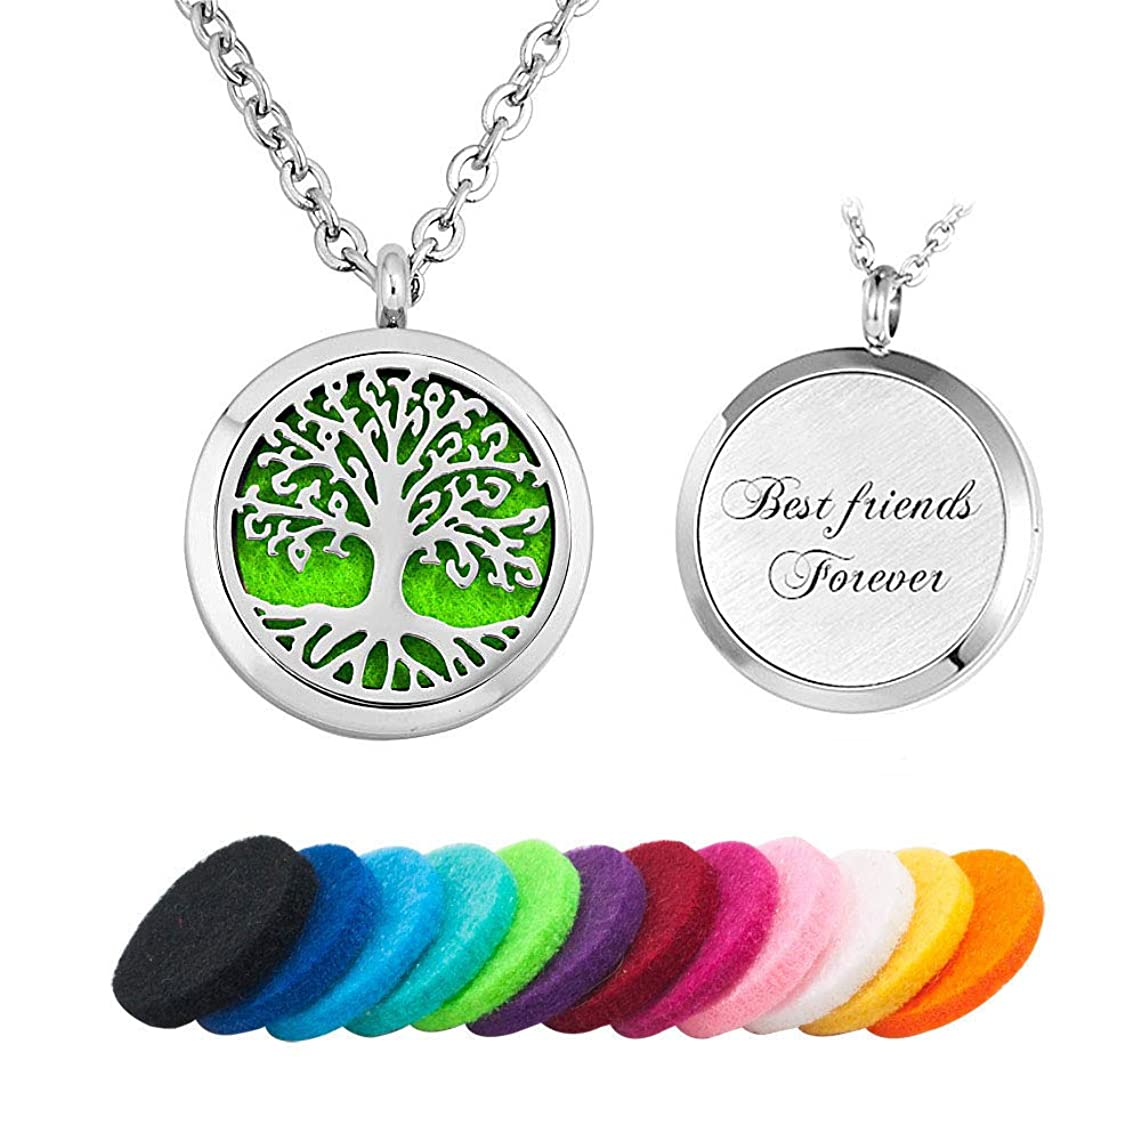 LoEnMe Jewelry Aromatherapy Essential Oil Diffuser Necklace Tree of Life Family Friend Mom Dad Locket Pendant